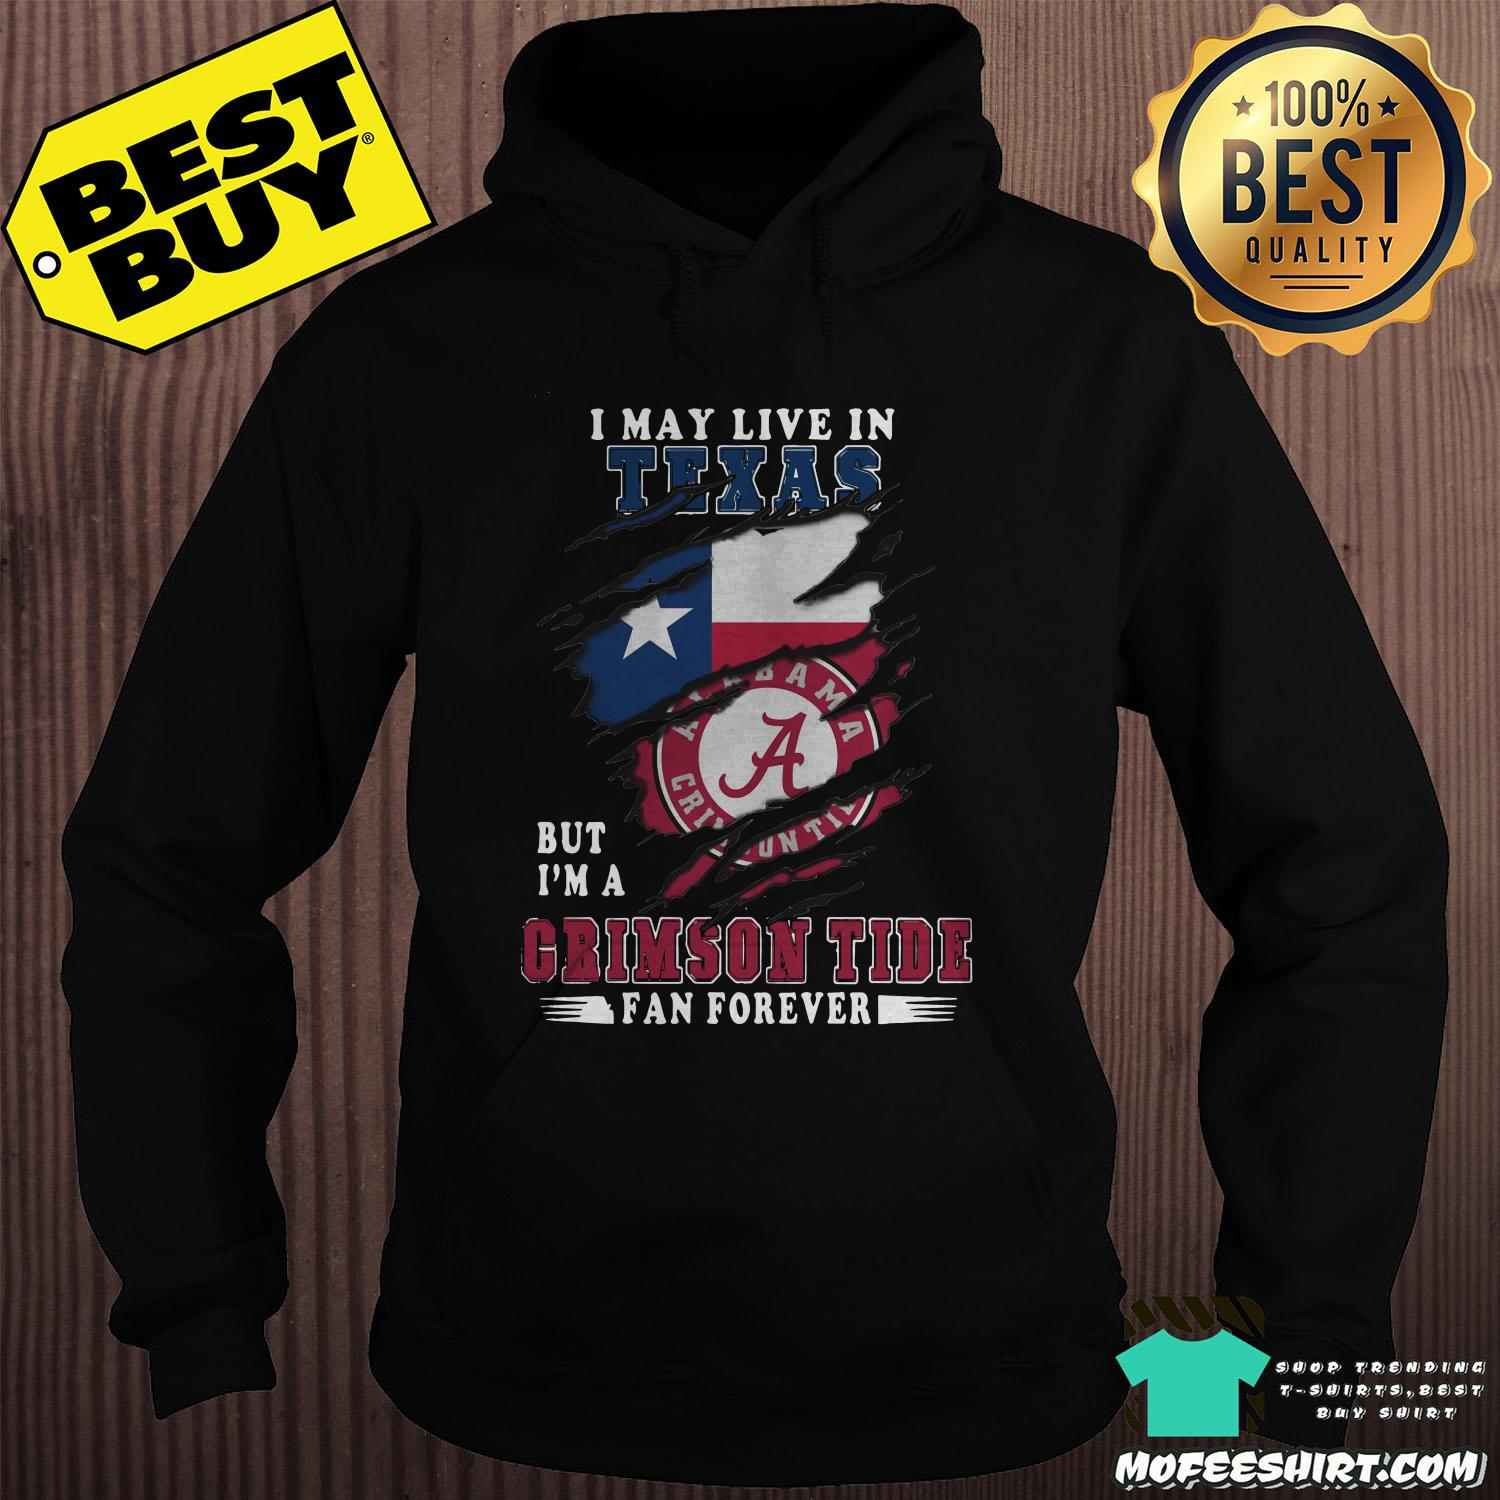 i may live in texas but im a crimson tide fan forever hoodie - I May Live In Texas But I'm A Crimson Tide Fan Forever Alabama Crimson Shirt